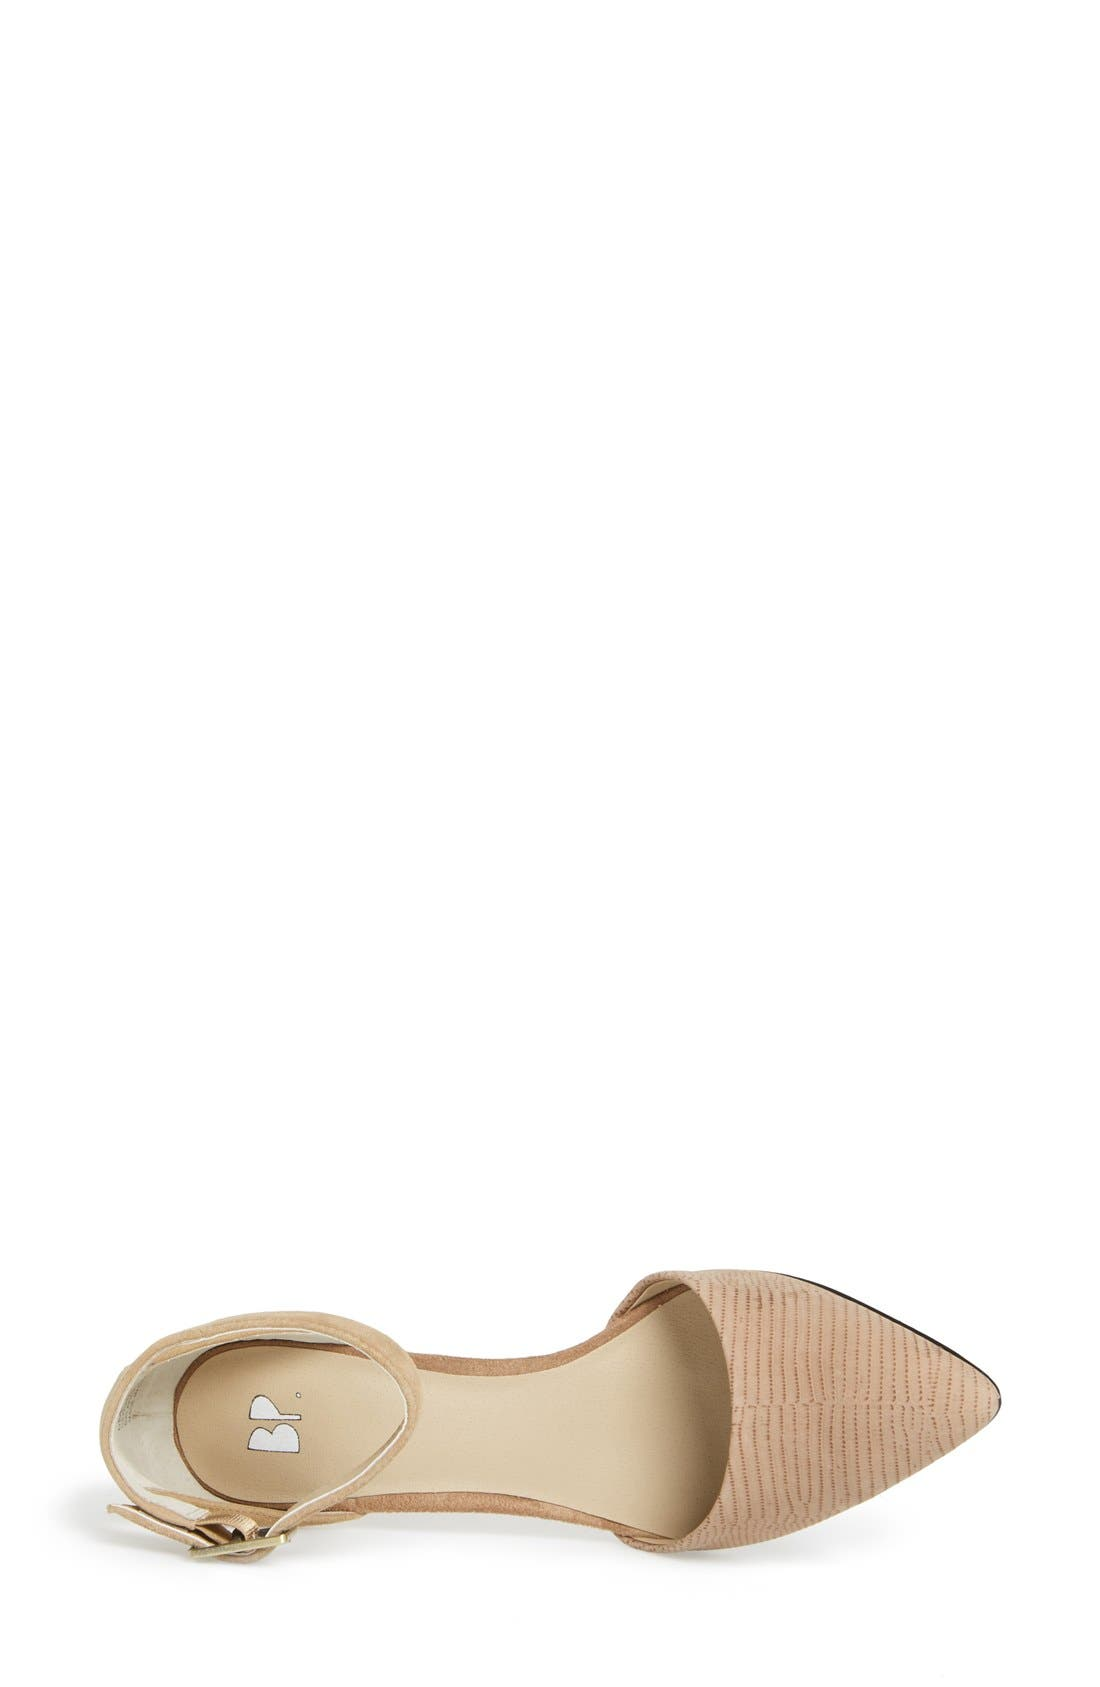 'Mallory' Ankle Strap Pump,                             Alternate thumbnail 3, color,                             Beige/ Nude